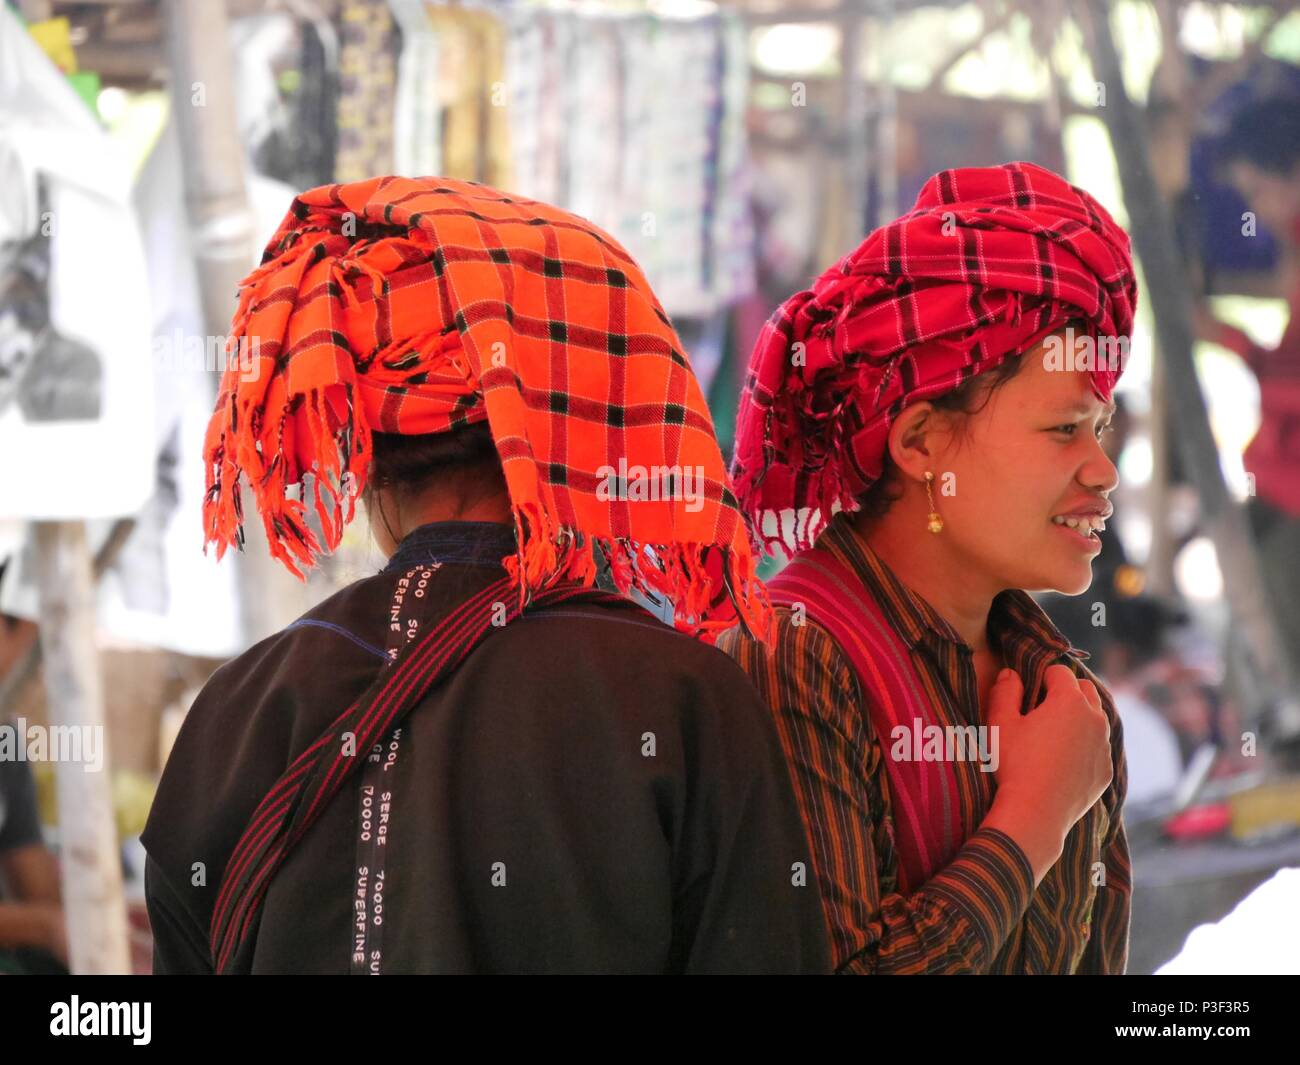 Close up of two smiling young Shan girls in bright red and orange checked traditional headdress in market near Inle Lake, Myanmar (Burma) - Stock Image